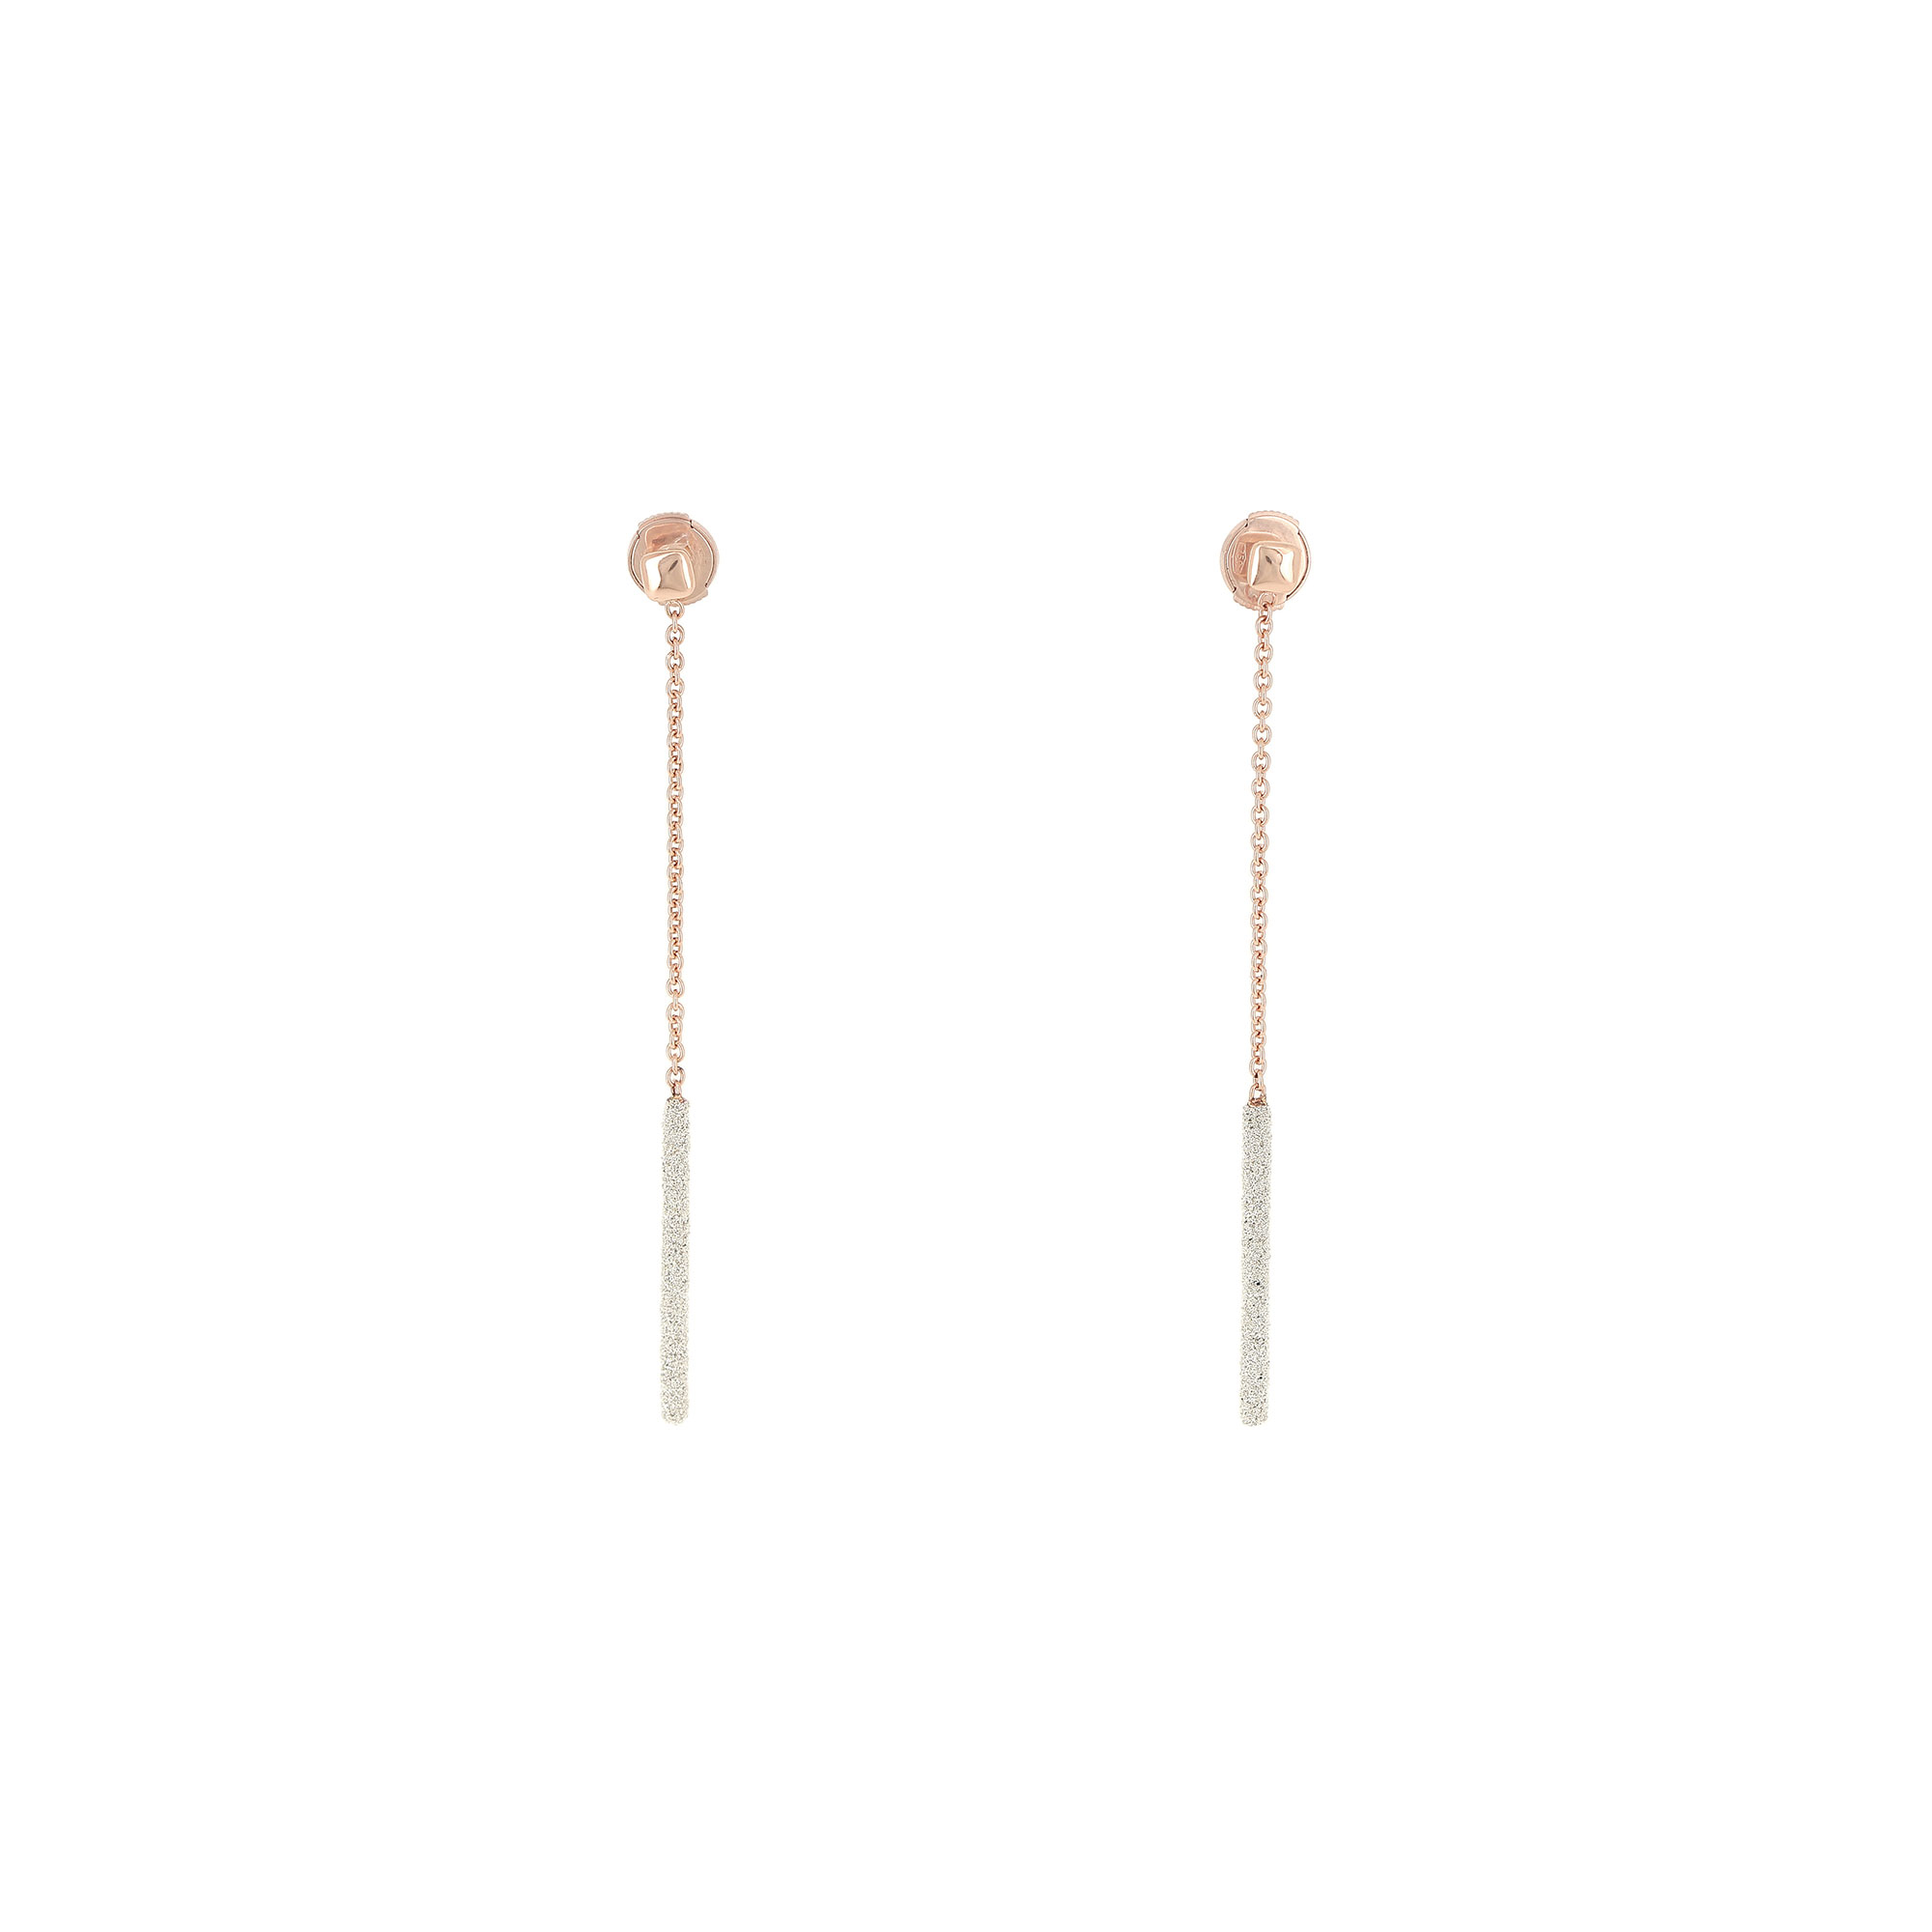 Pesavento 18K Rose Gold  Champagne Diamond Dust Gold Earrings with Stones YBSCO013